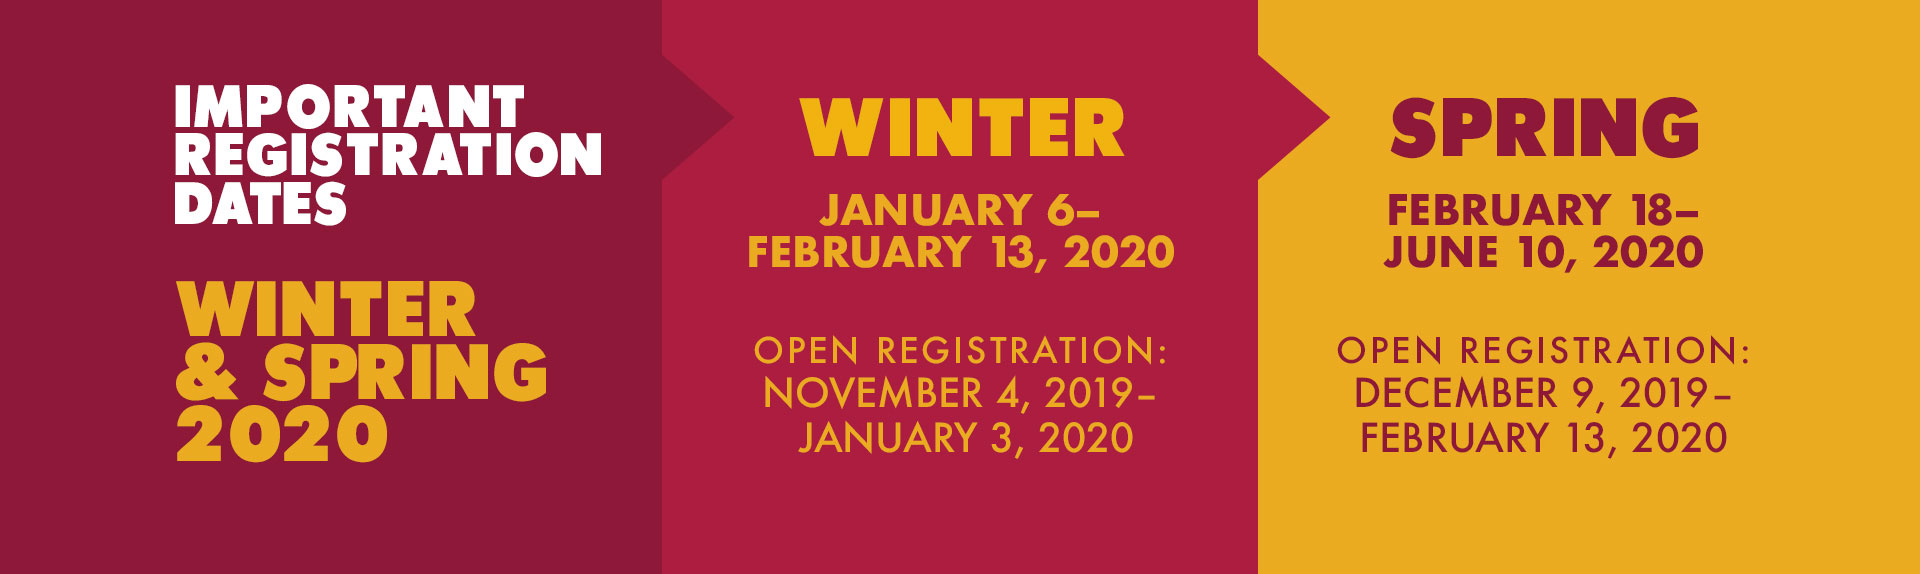 Winter and Spring 2020 Important Dates